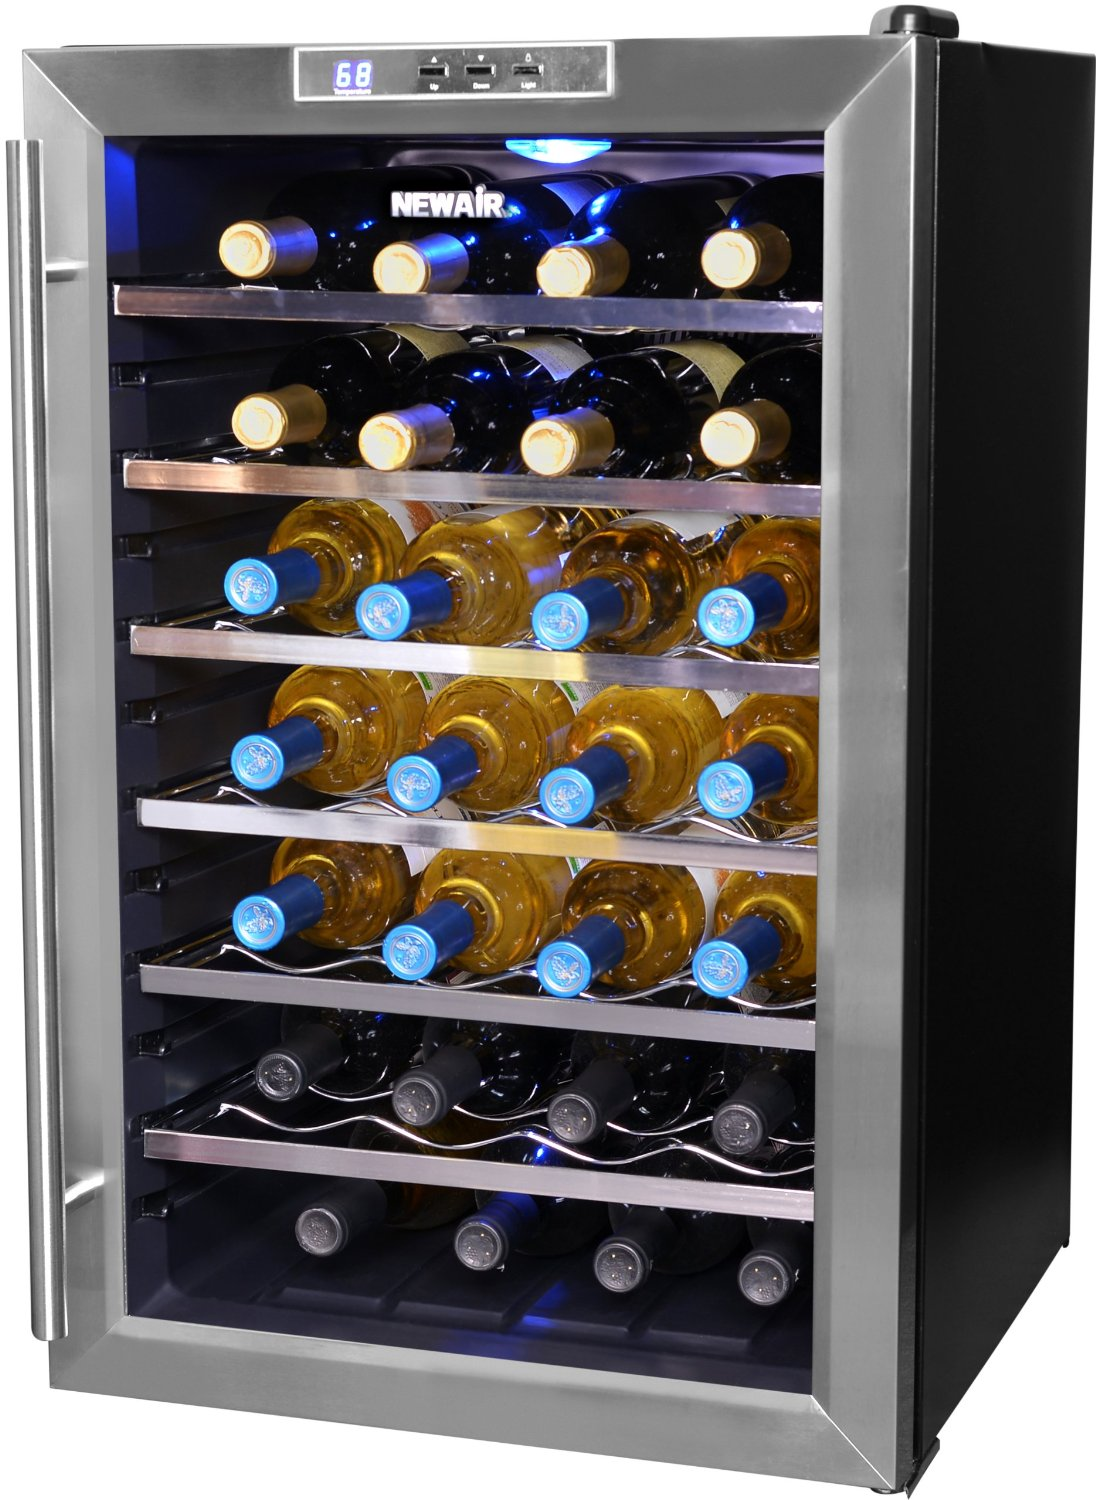 Best Wine Cooler the best wine coolers - reviews & tips